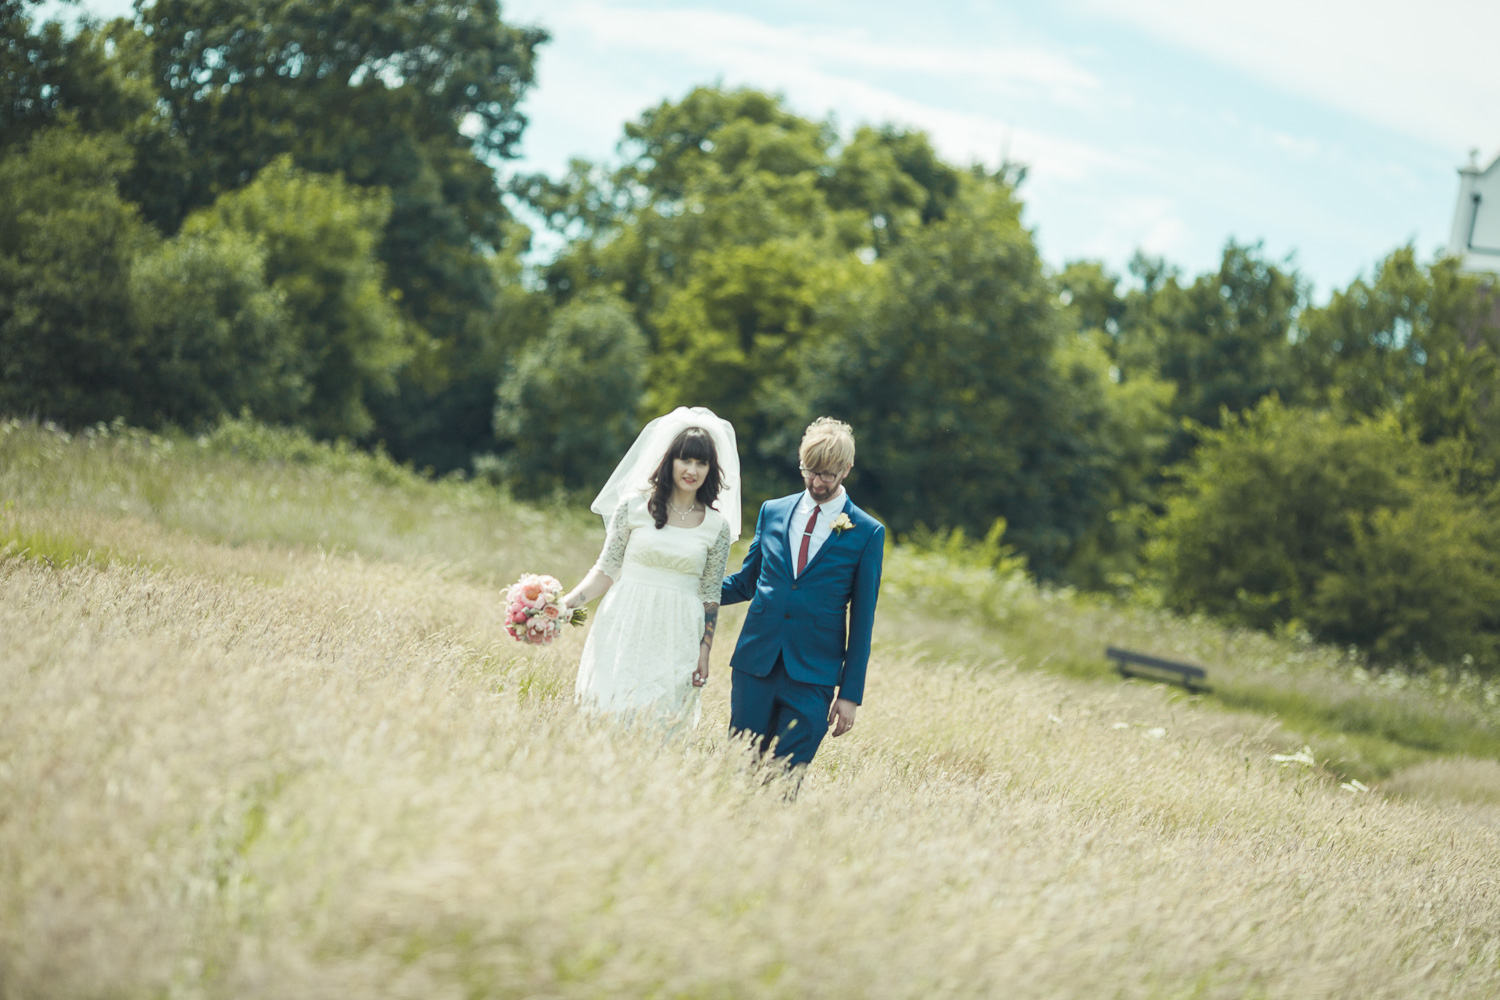 burgh-house-hampstead-north-london-wedding-0155.jpg